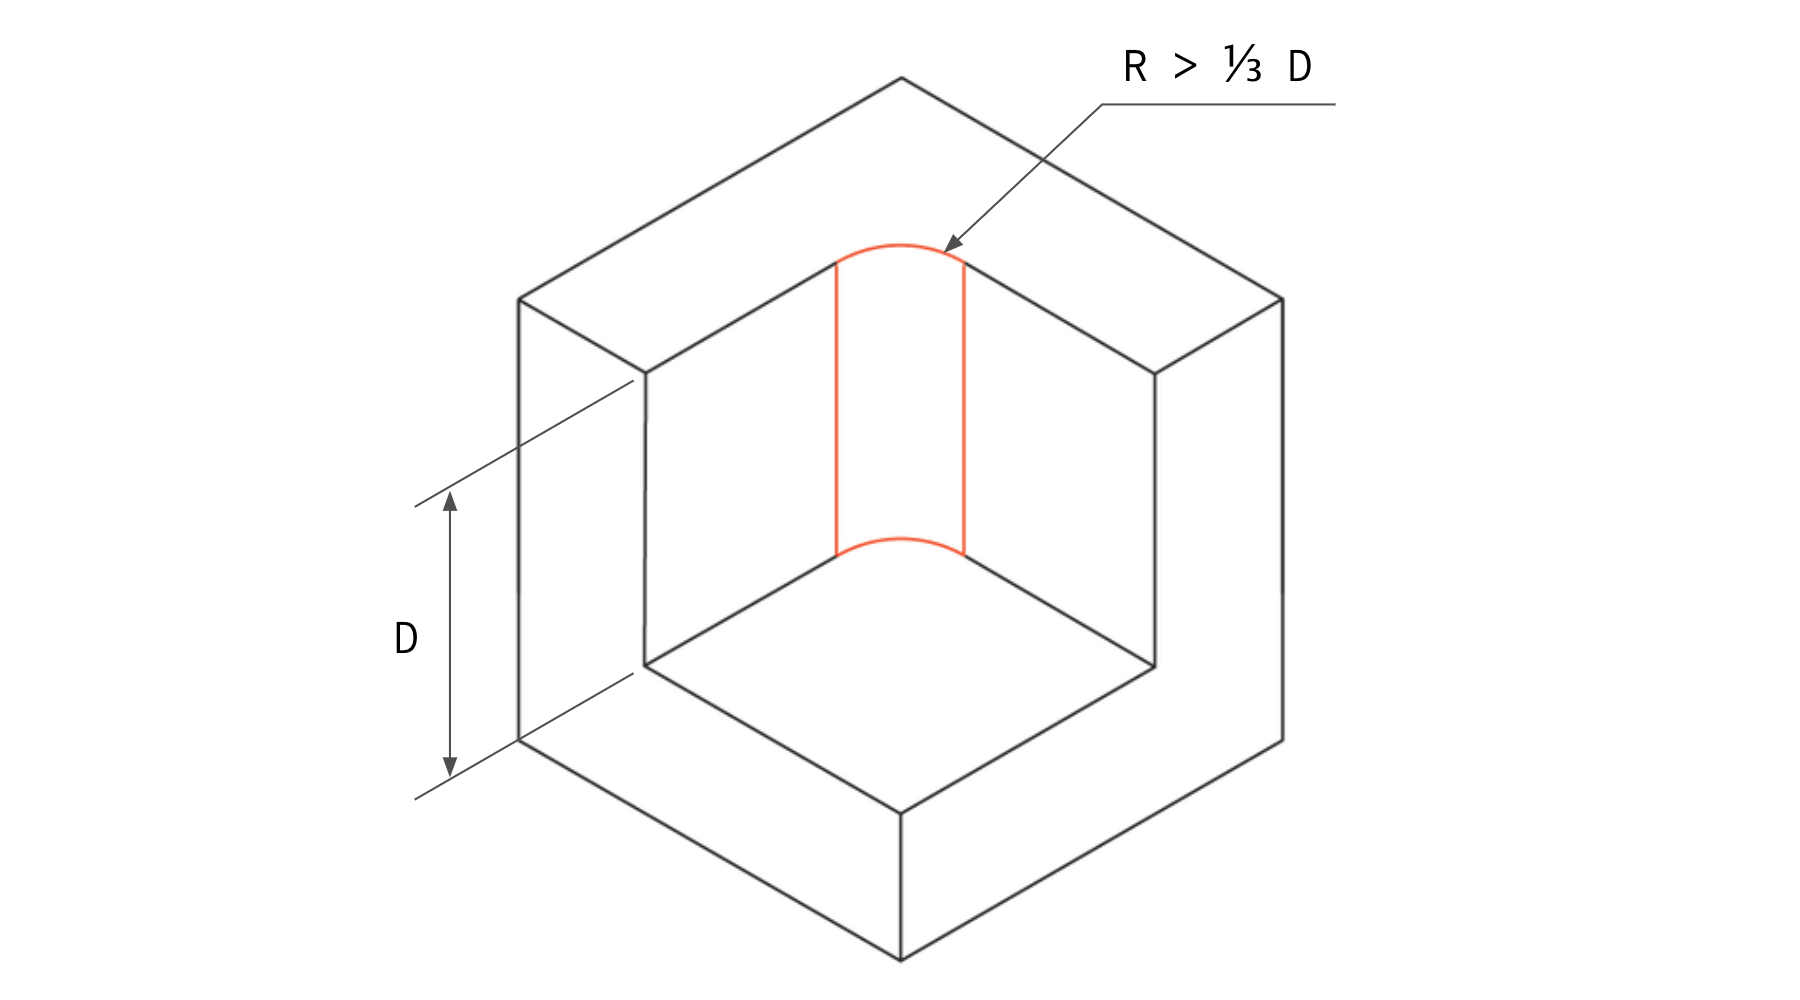 Add internal radii at the corners that are at least 1/3 of the depth of the cavity